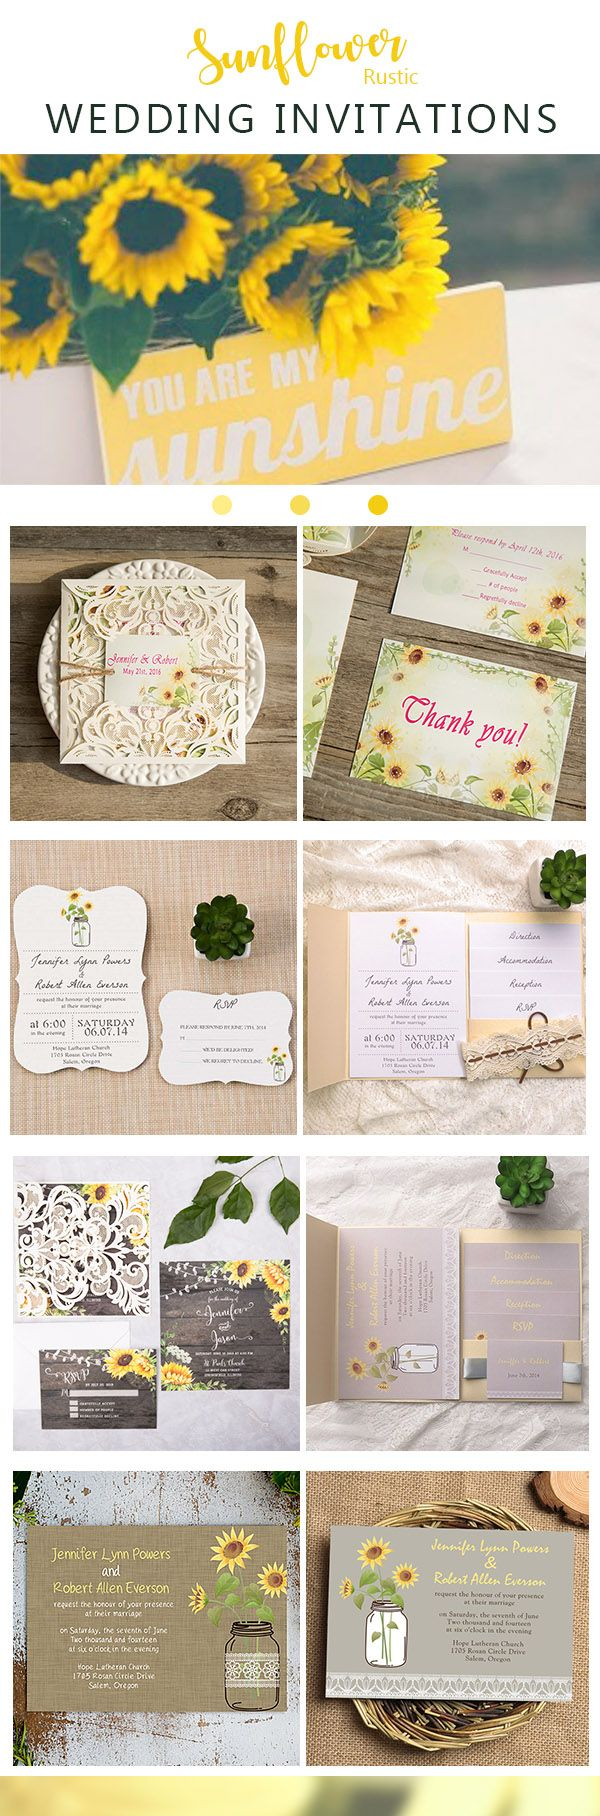 bridal shower invitations vector free%0A Rustic watercolor yellow sunflower barn wood wedding invitation EWDK    as  low as